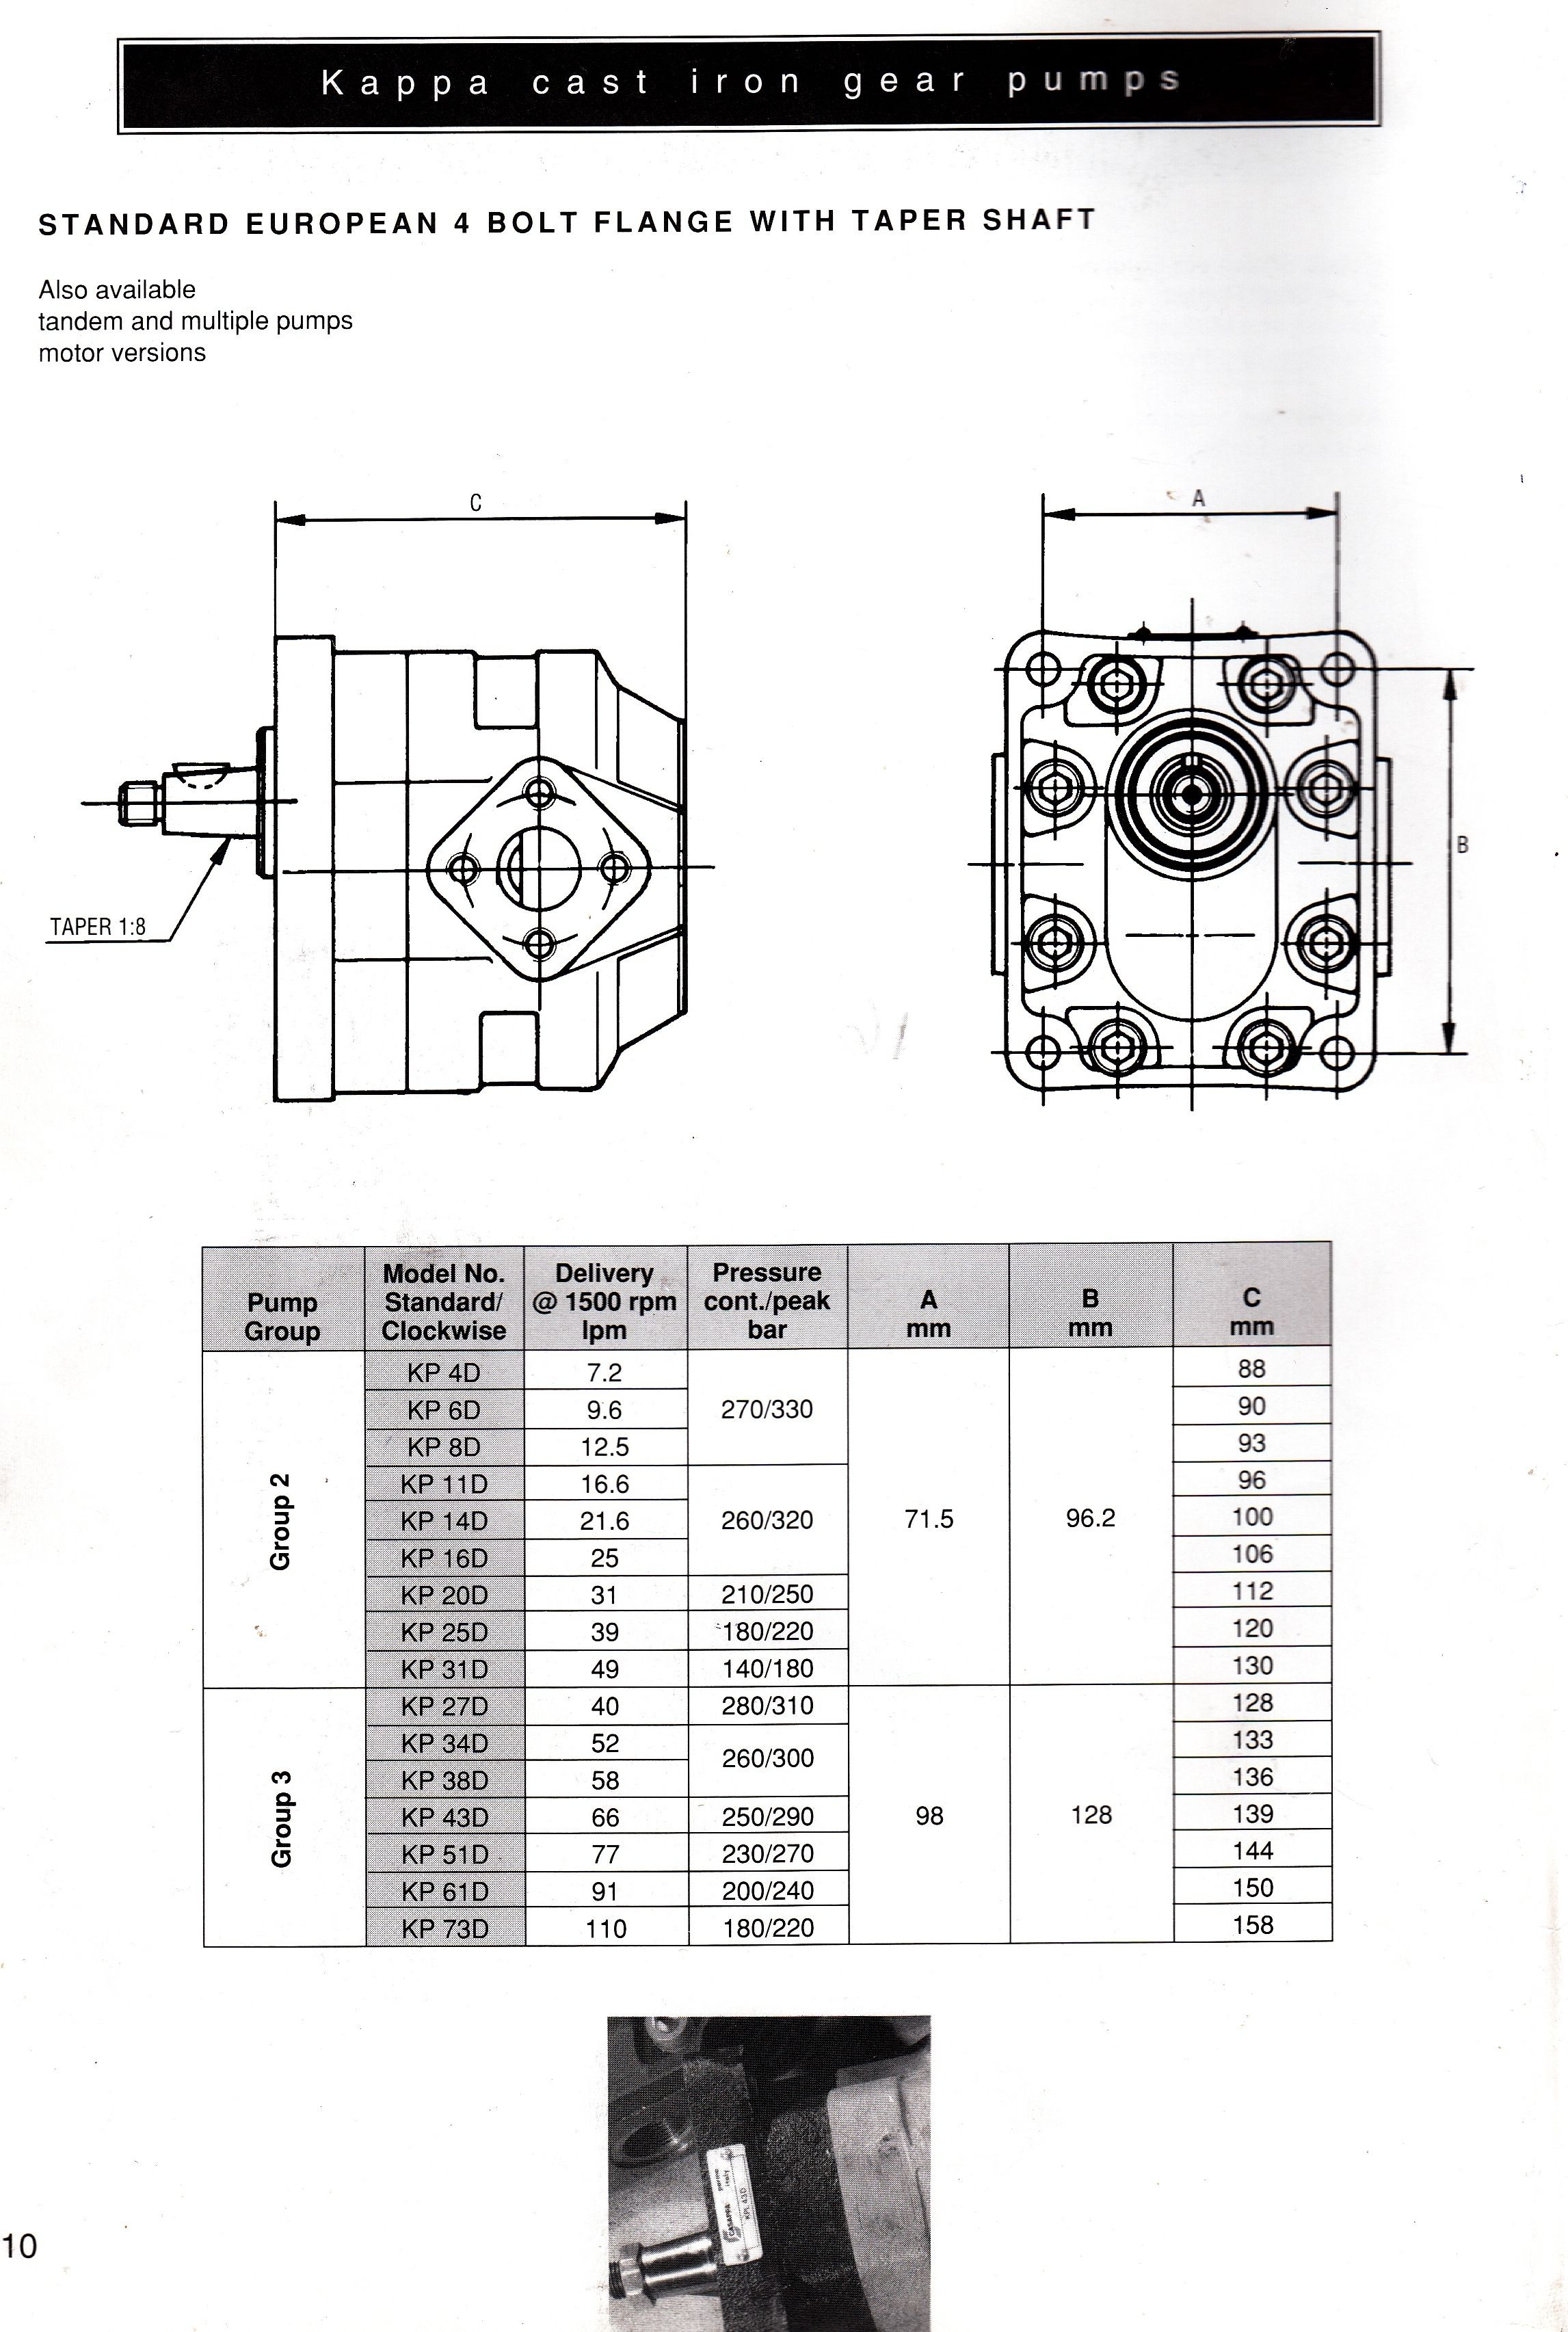 Volvo V70 Wiring Diagram 2004 besides Wiring Diagram Toyota Bb moreover Volvo V70 Wiring Schematics further 96 Acura Tl Engine Diagram besides 1996 Ford Explorer Wiring Diagram. on 2001 volvo s80 brake light wiring diagram